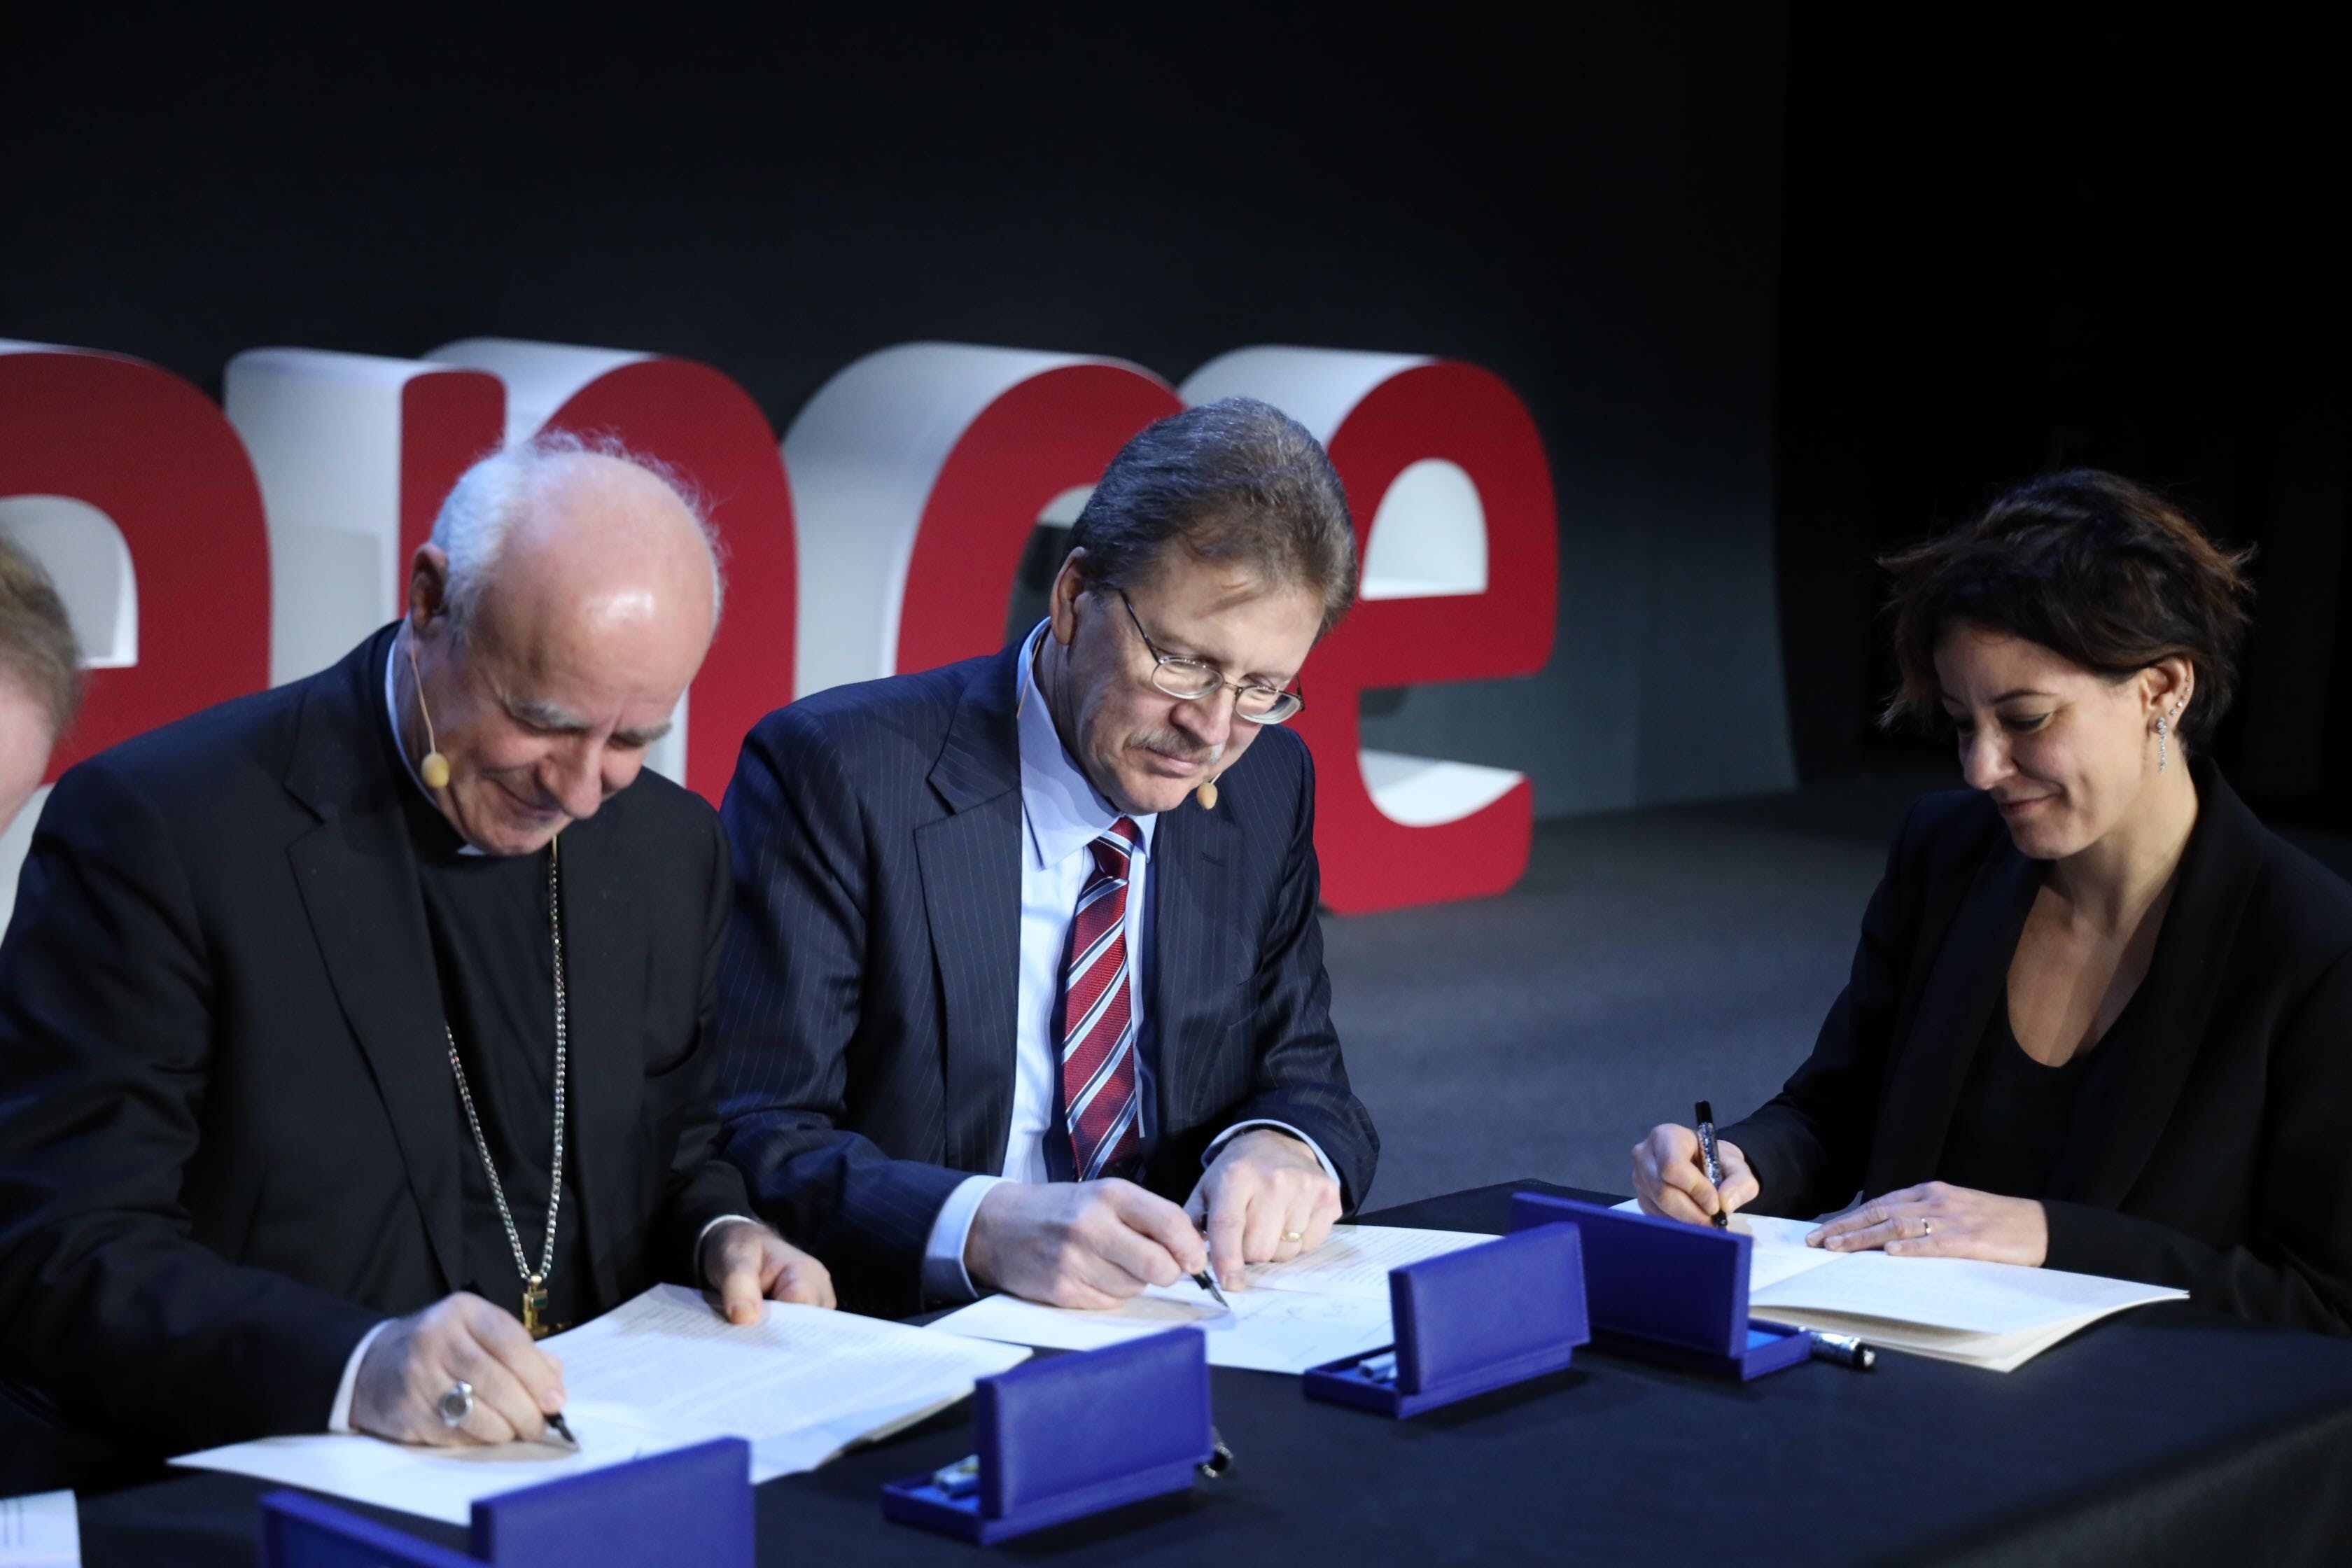 Two men and a woman signing the Rome Call for Ethics